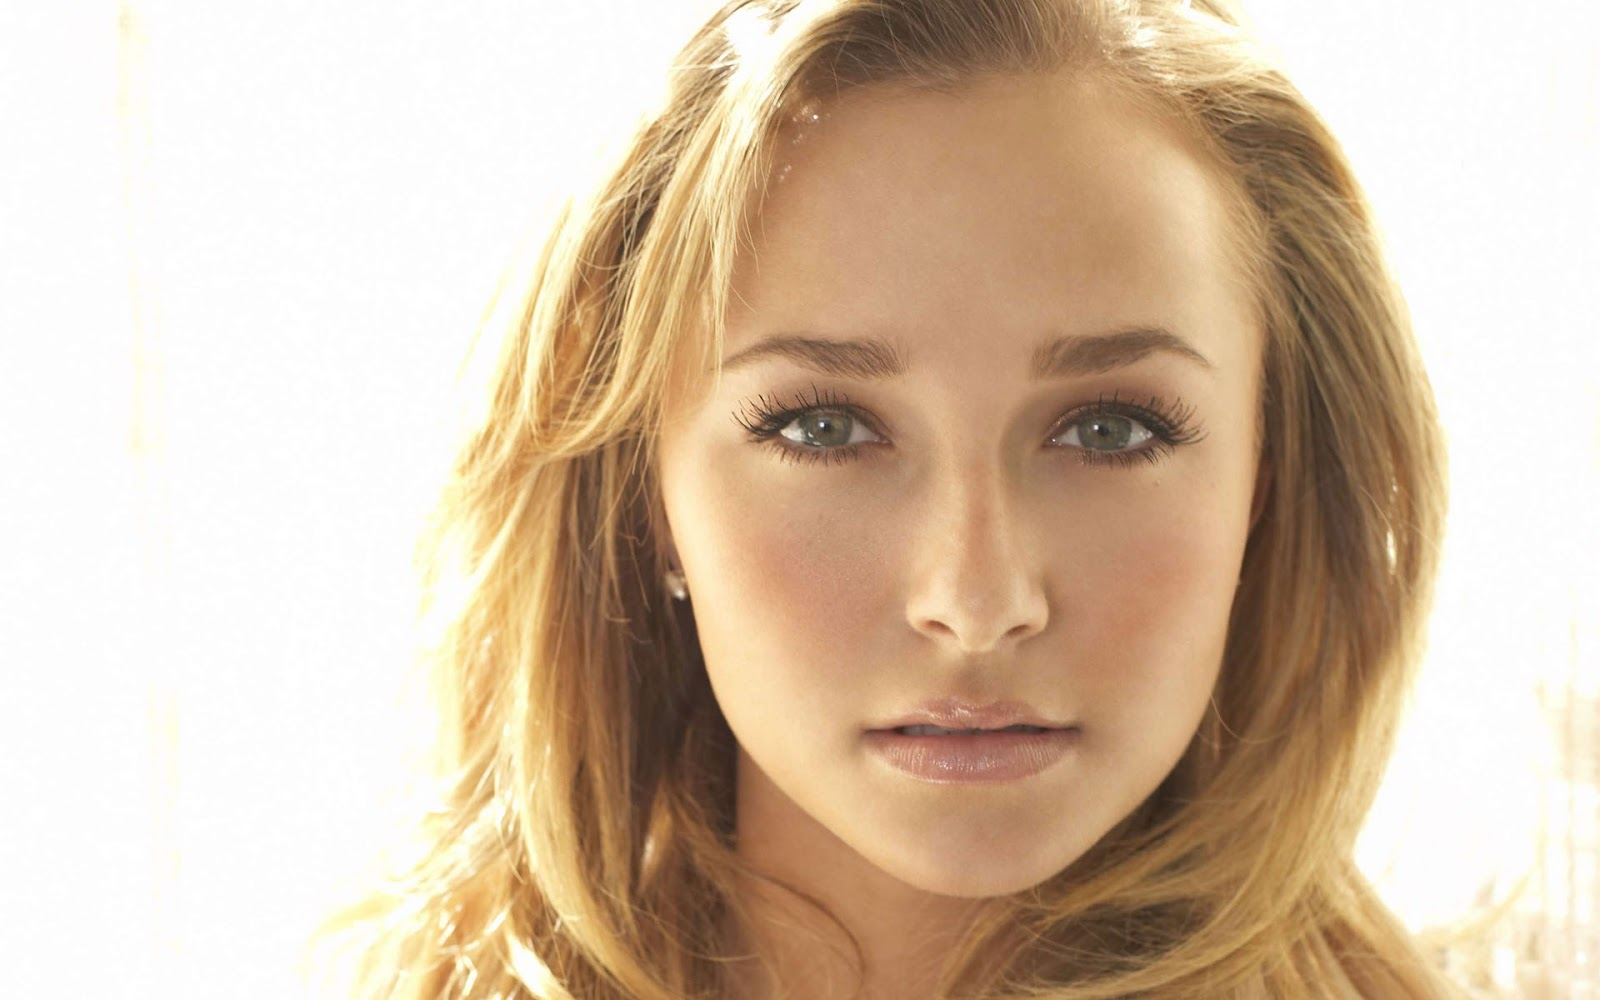 Lovely Wallpapers Hayden Panettiere Cute Amp Sexy Wallpapers